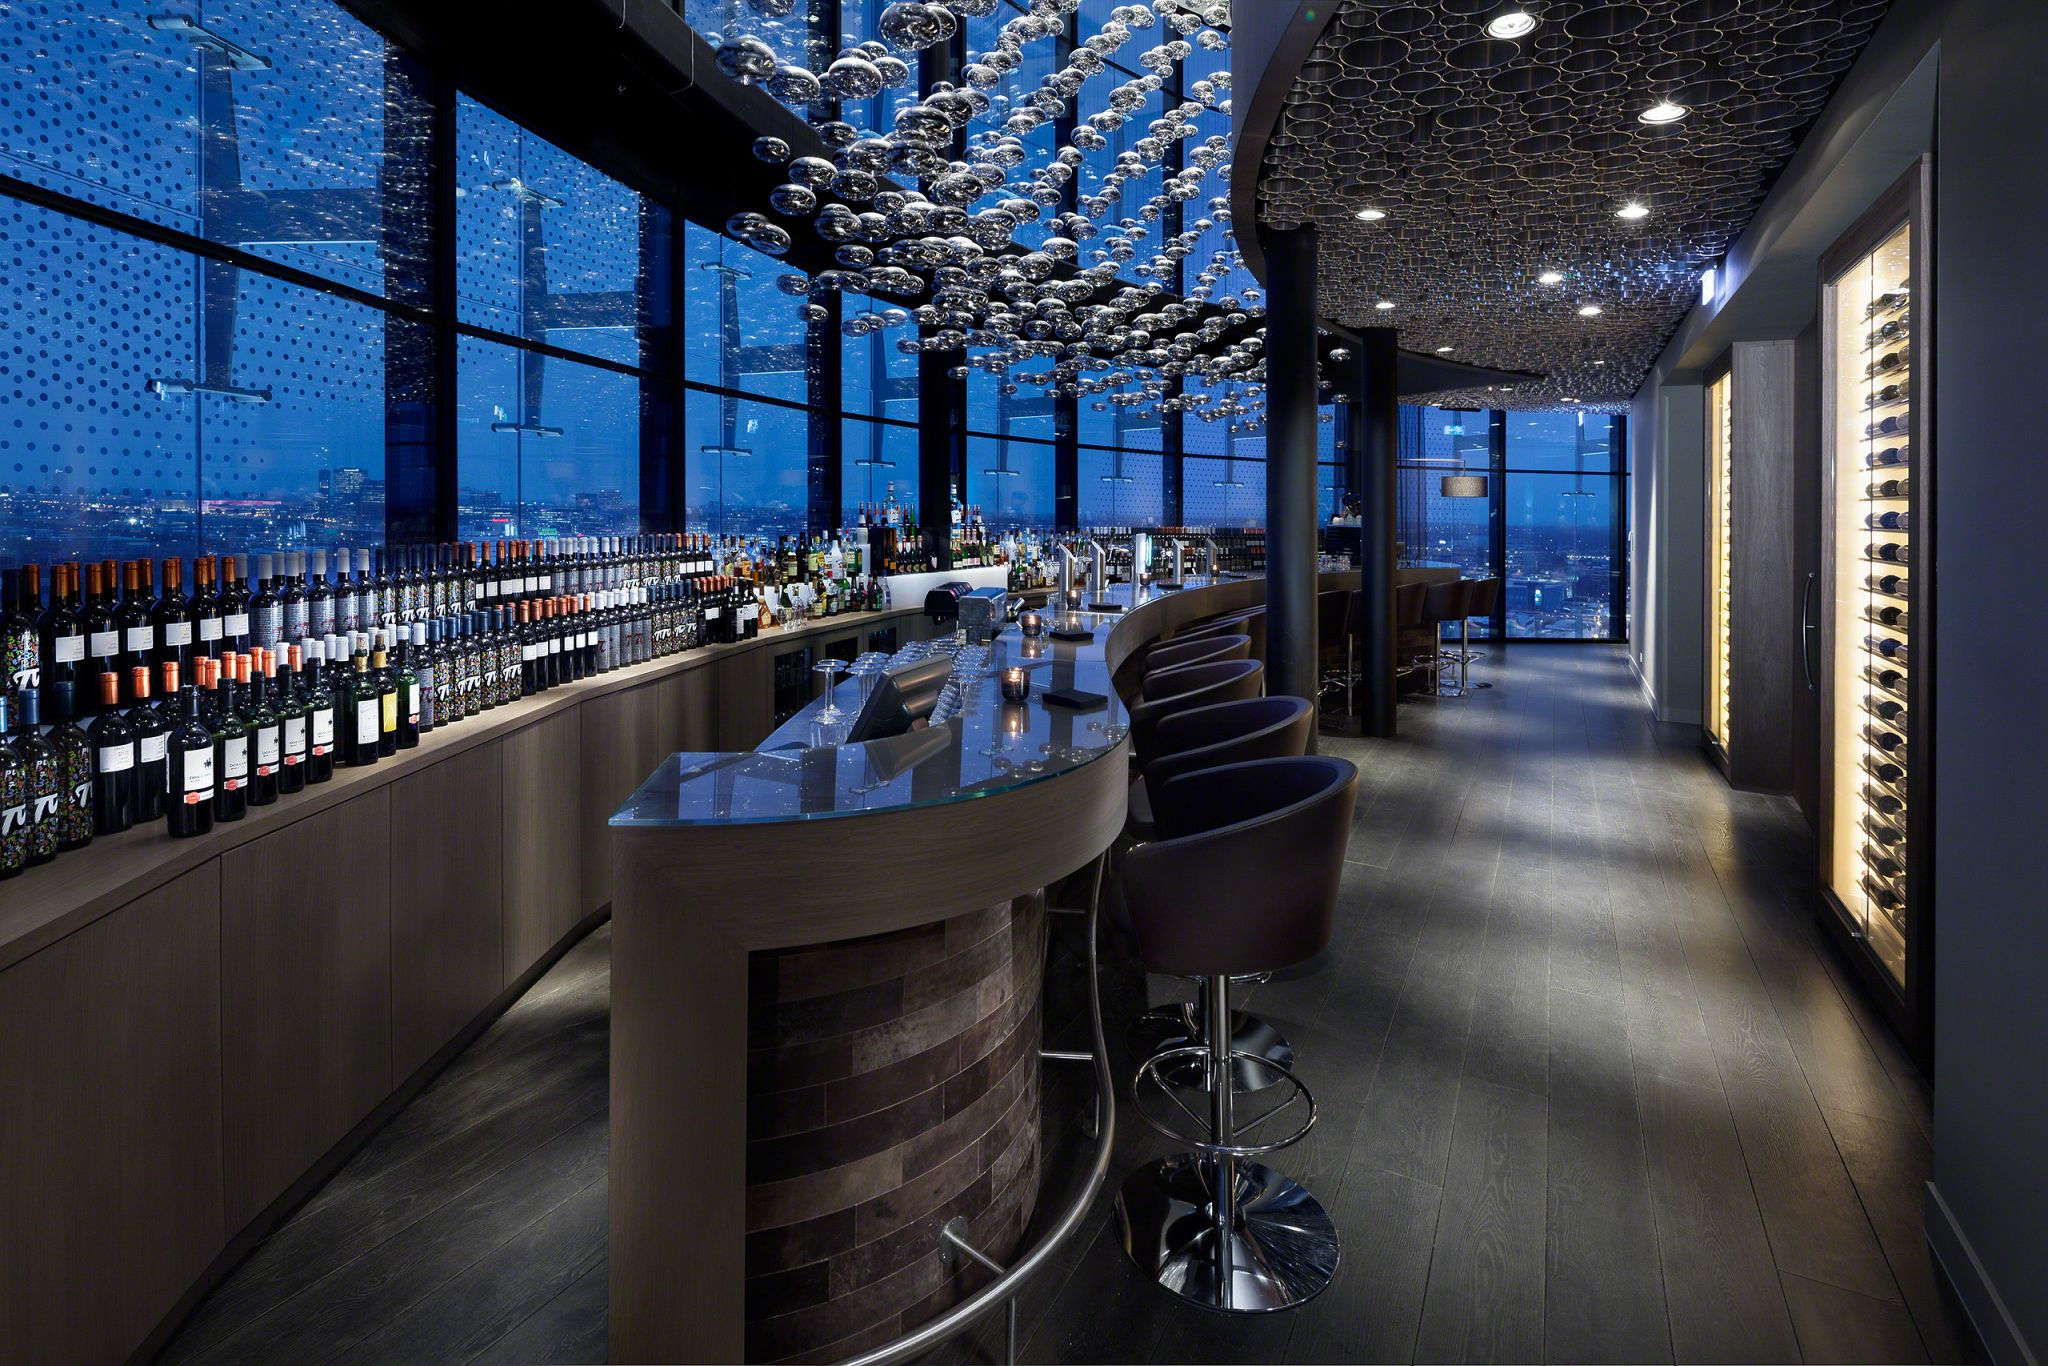 A chandelier acts as an eye-catcher in the sky bar of Amsterdam's Fletcher design hotel.